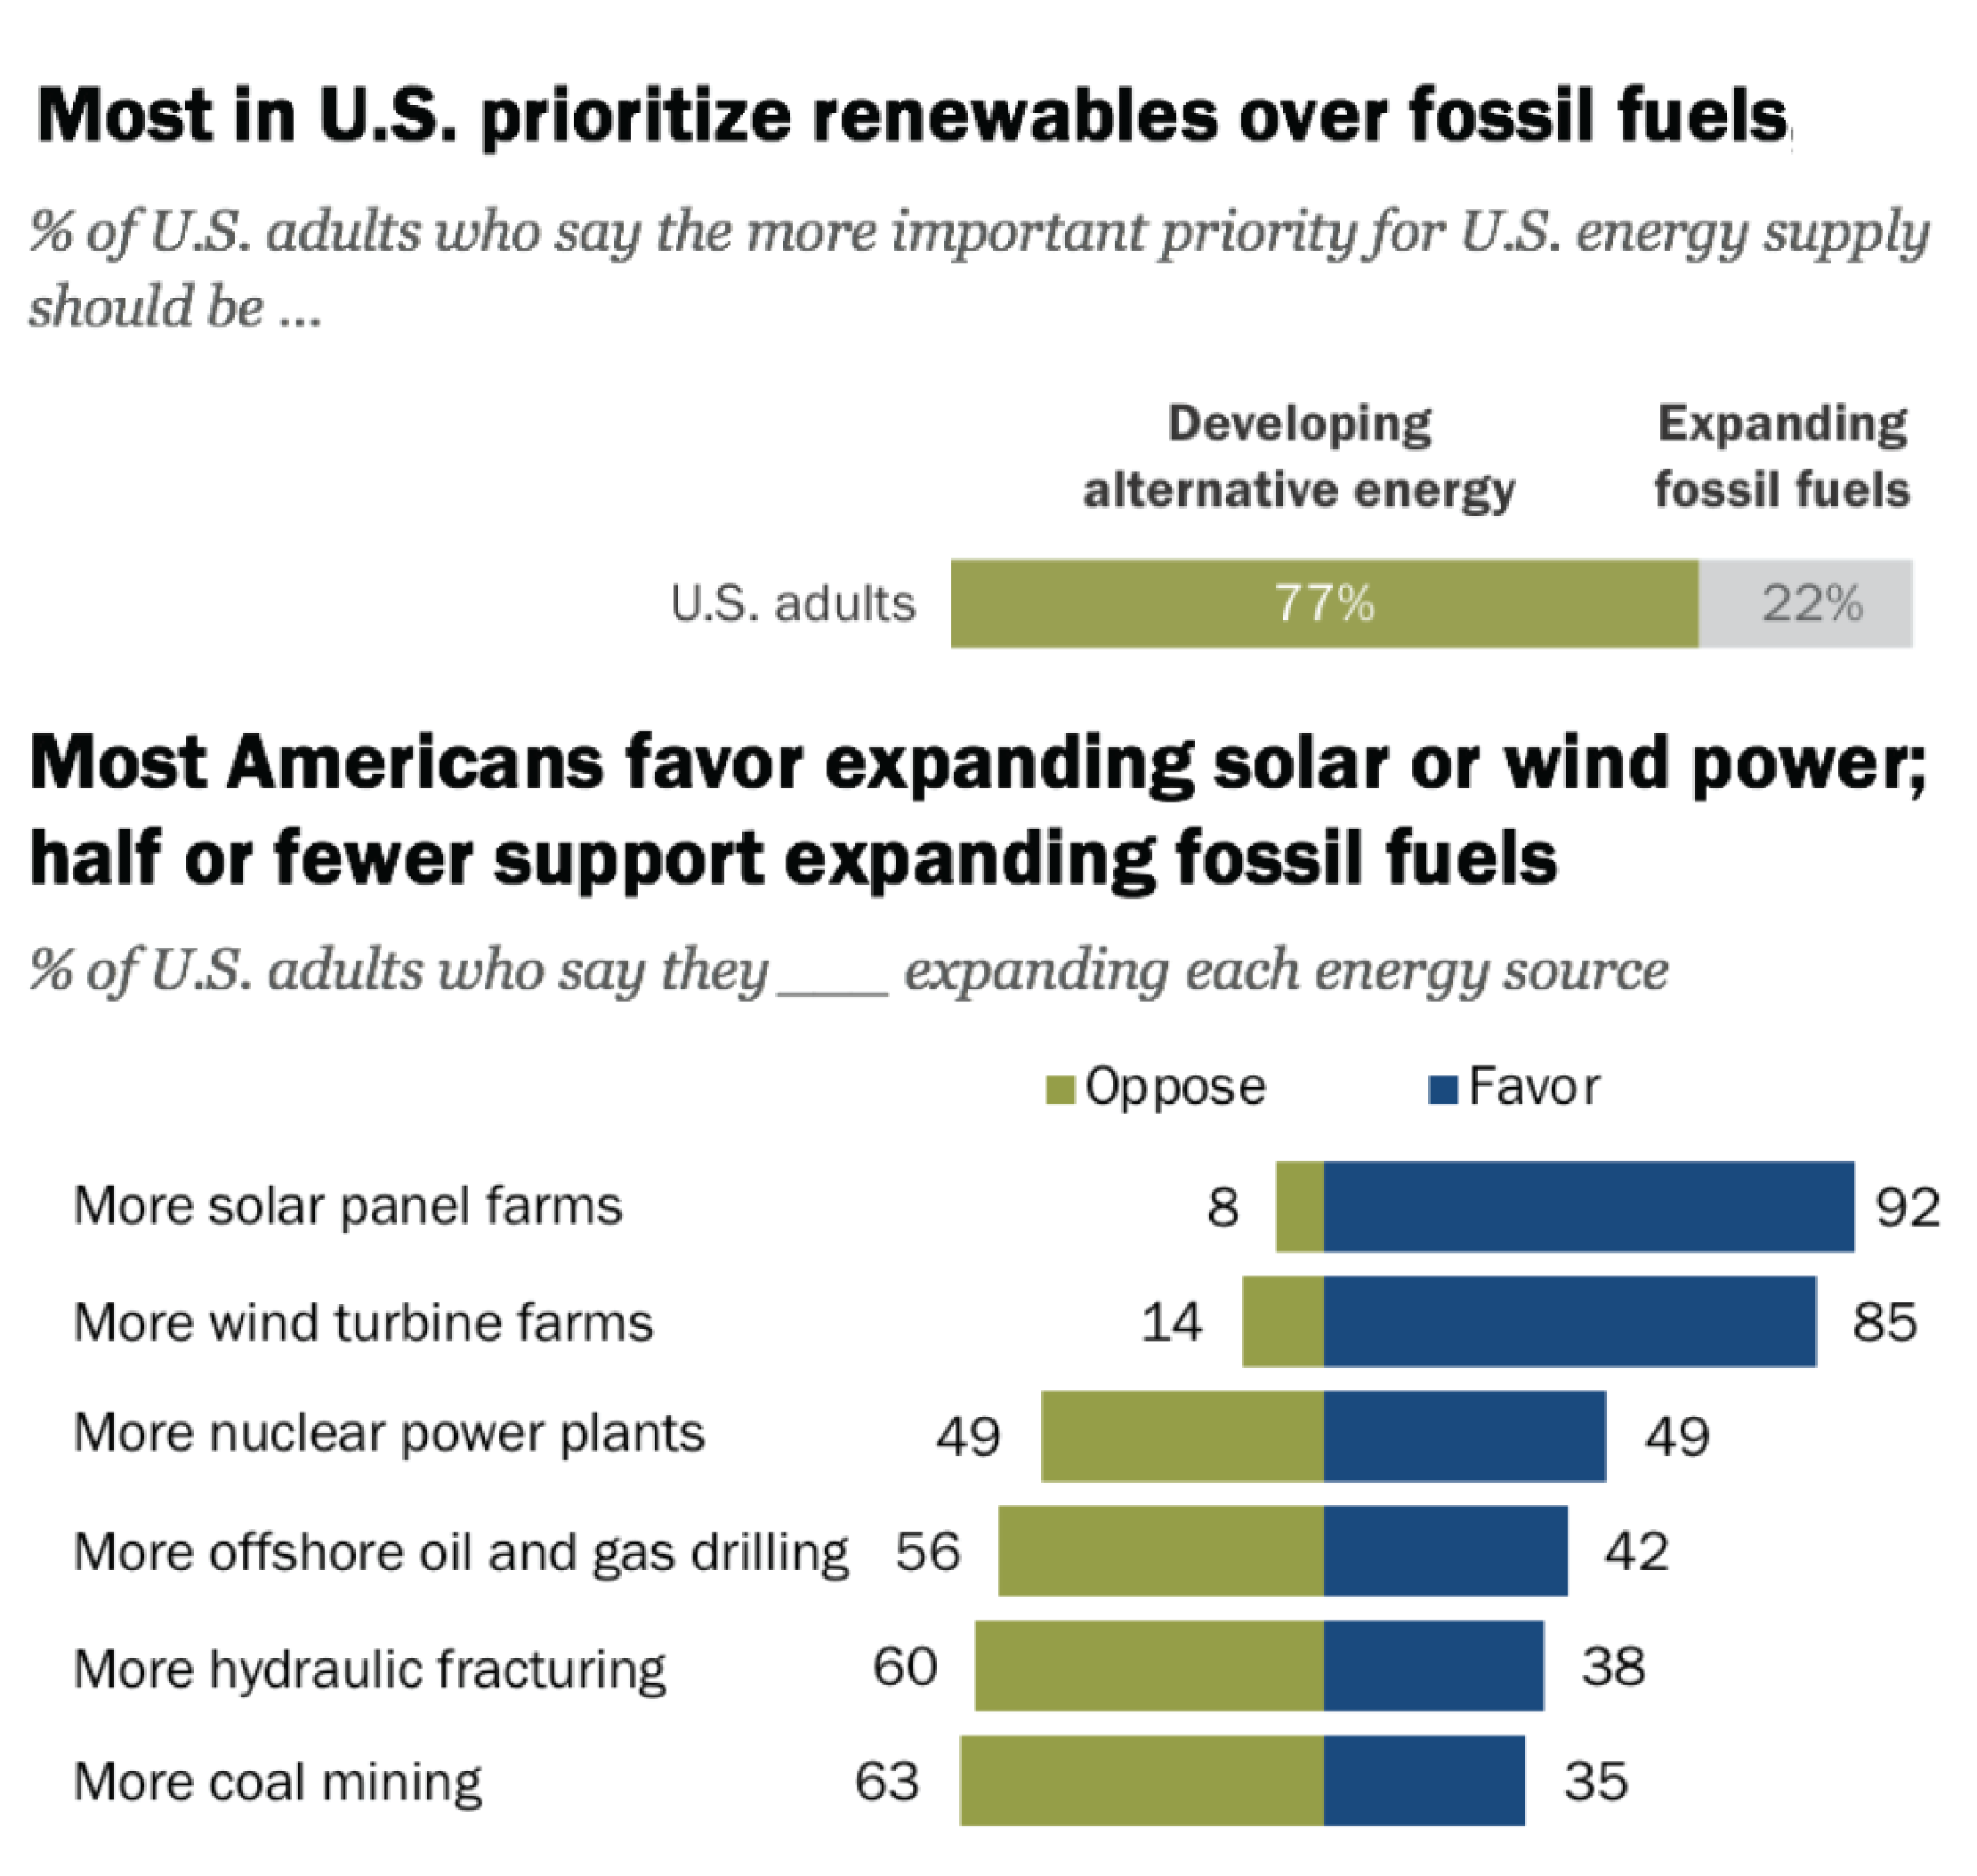 Most in US Prioritize Renewables Over Fossil Fuels